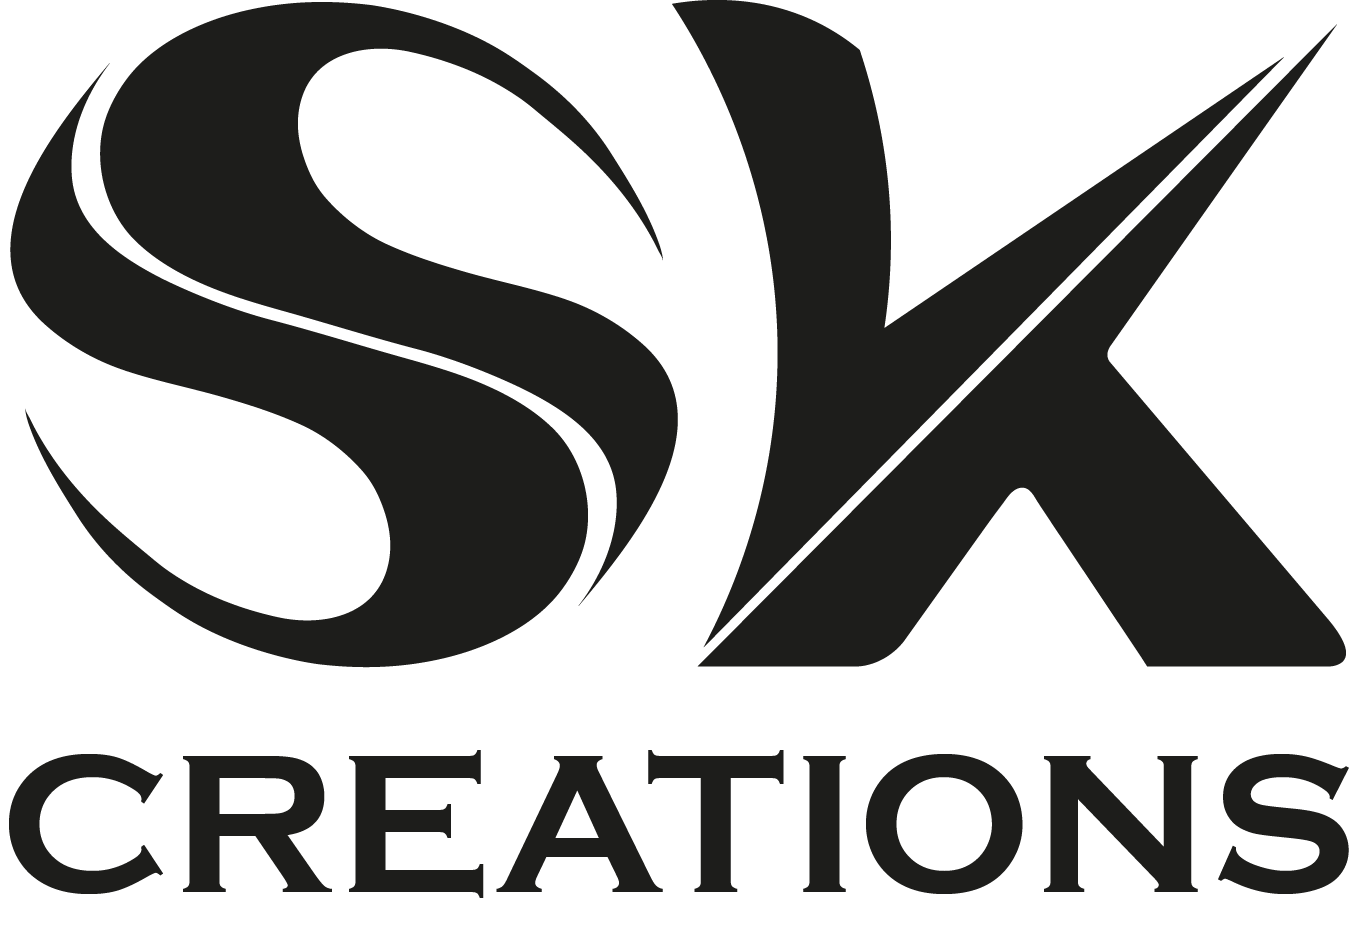 SK Creations